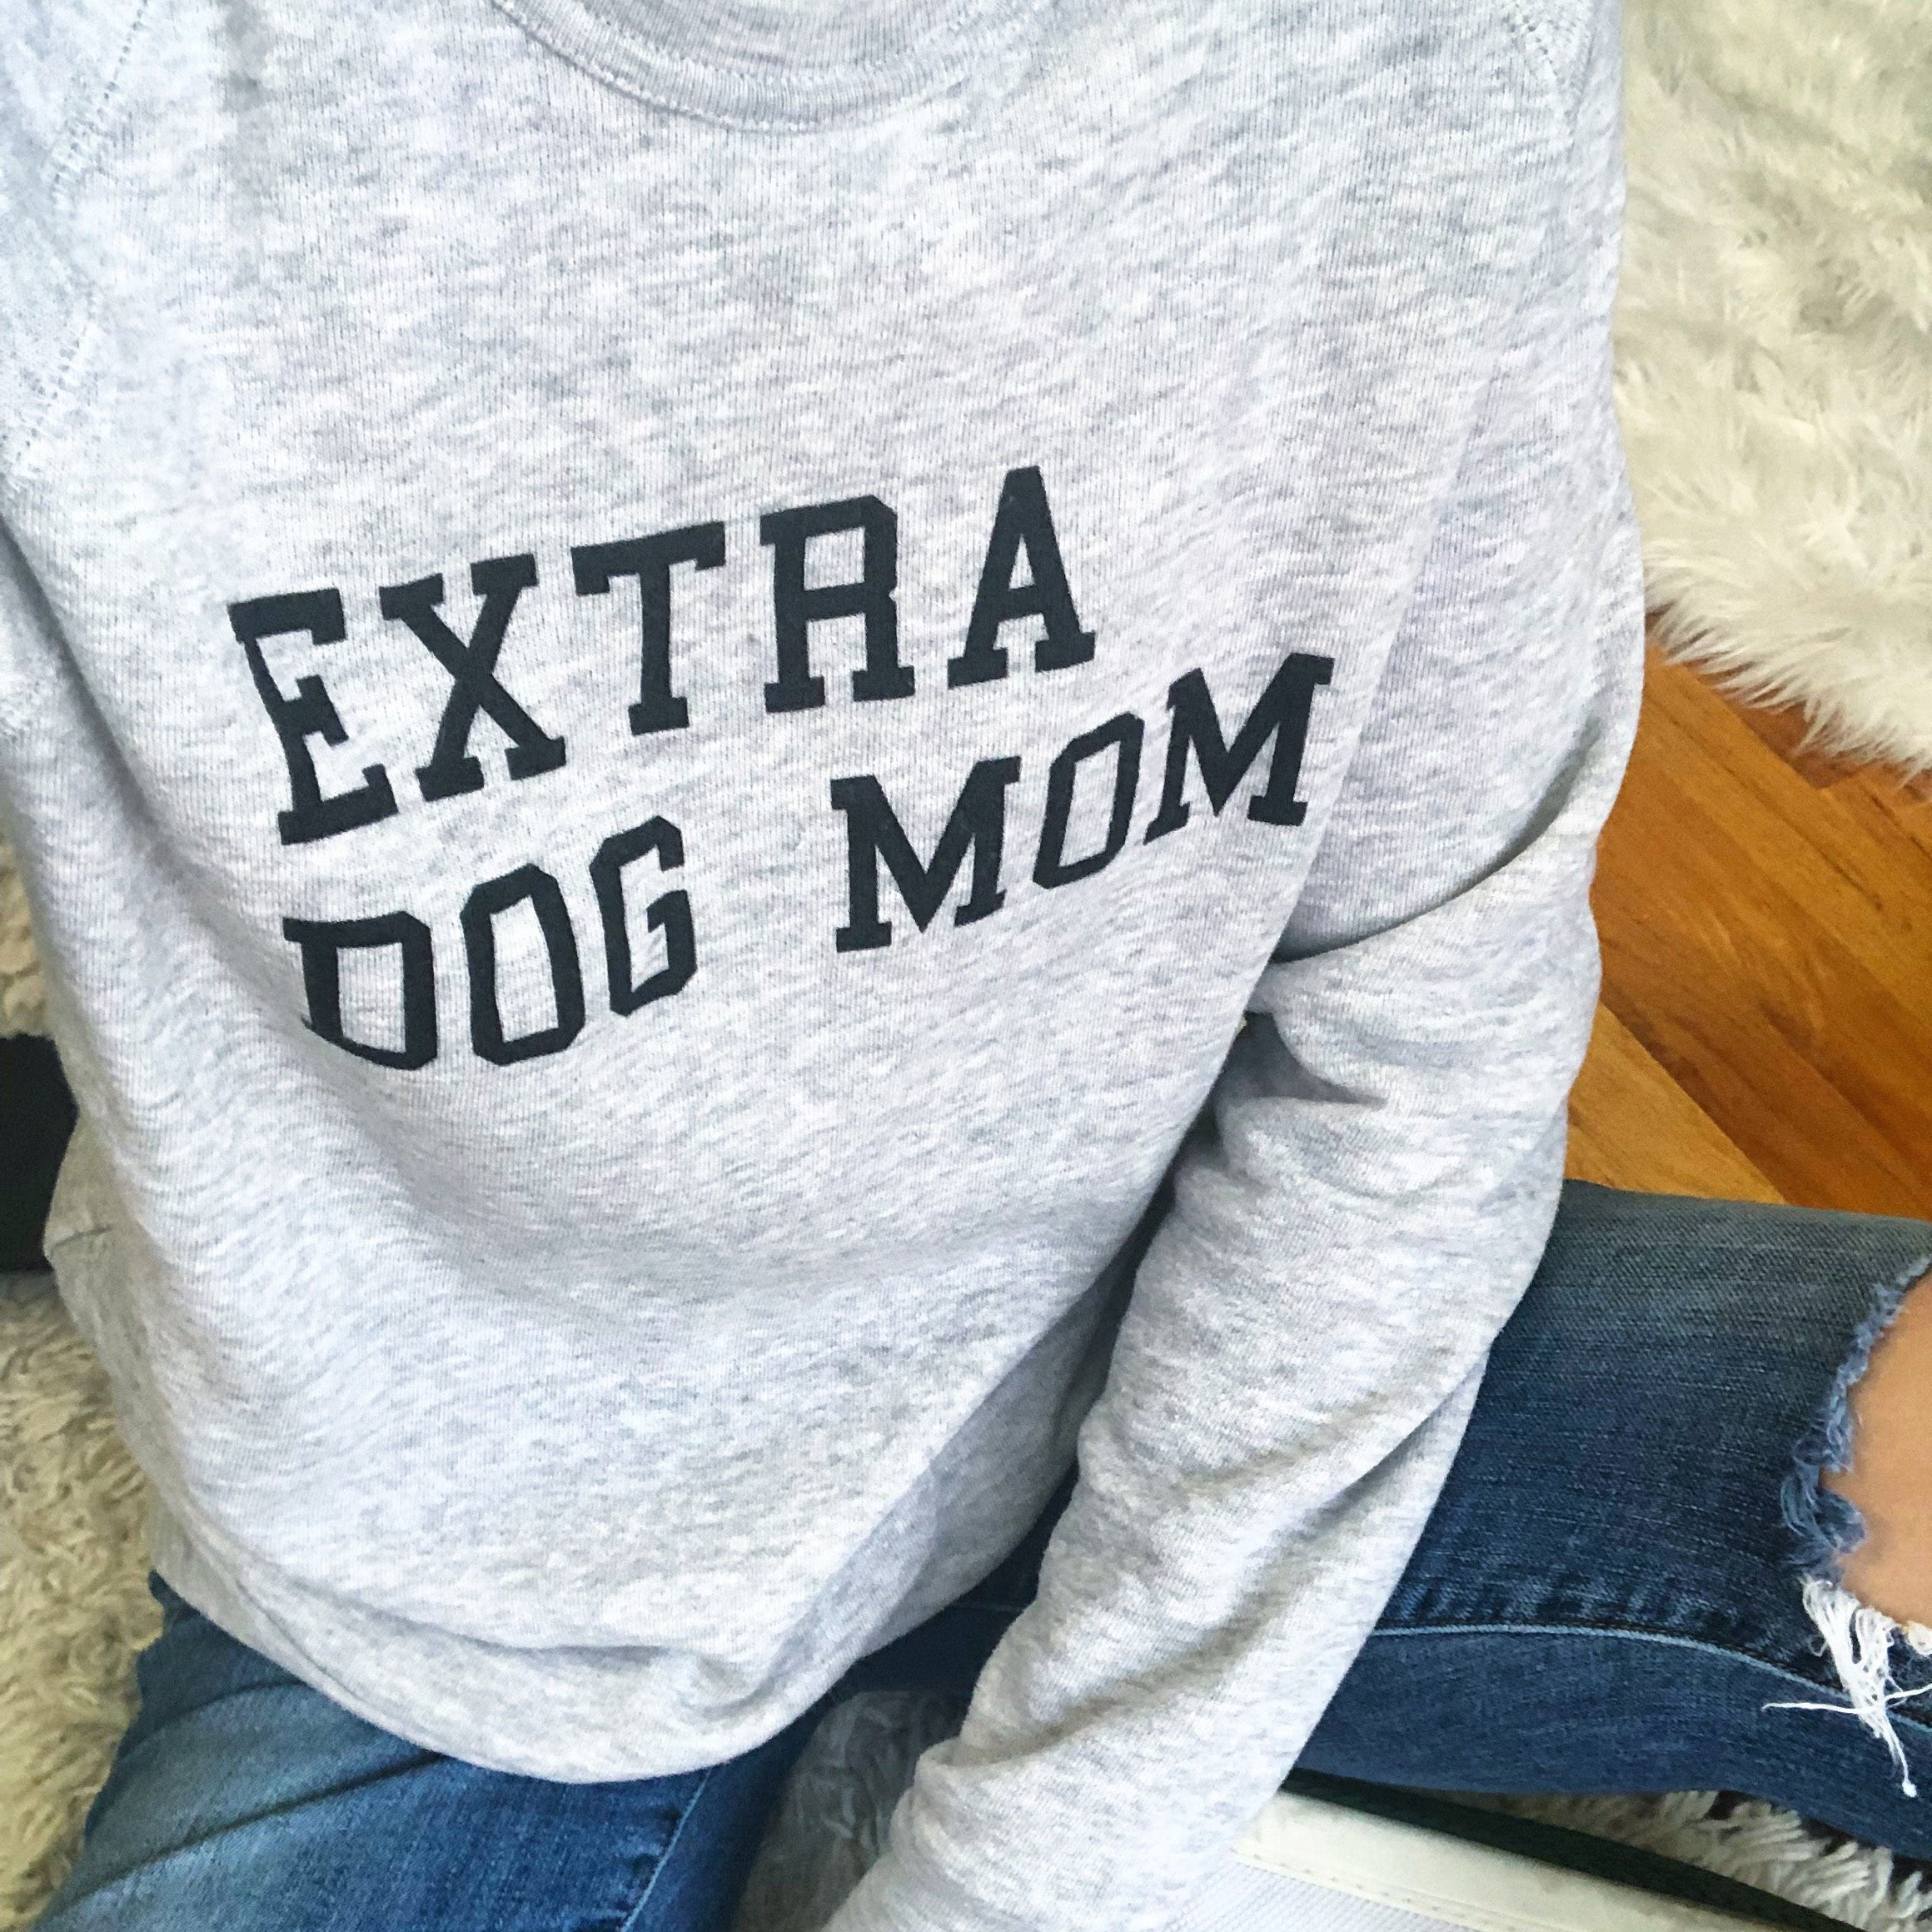 Extra Dog Mom sweatshirt